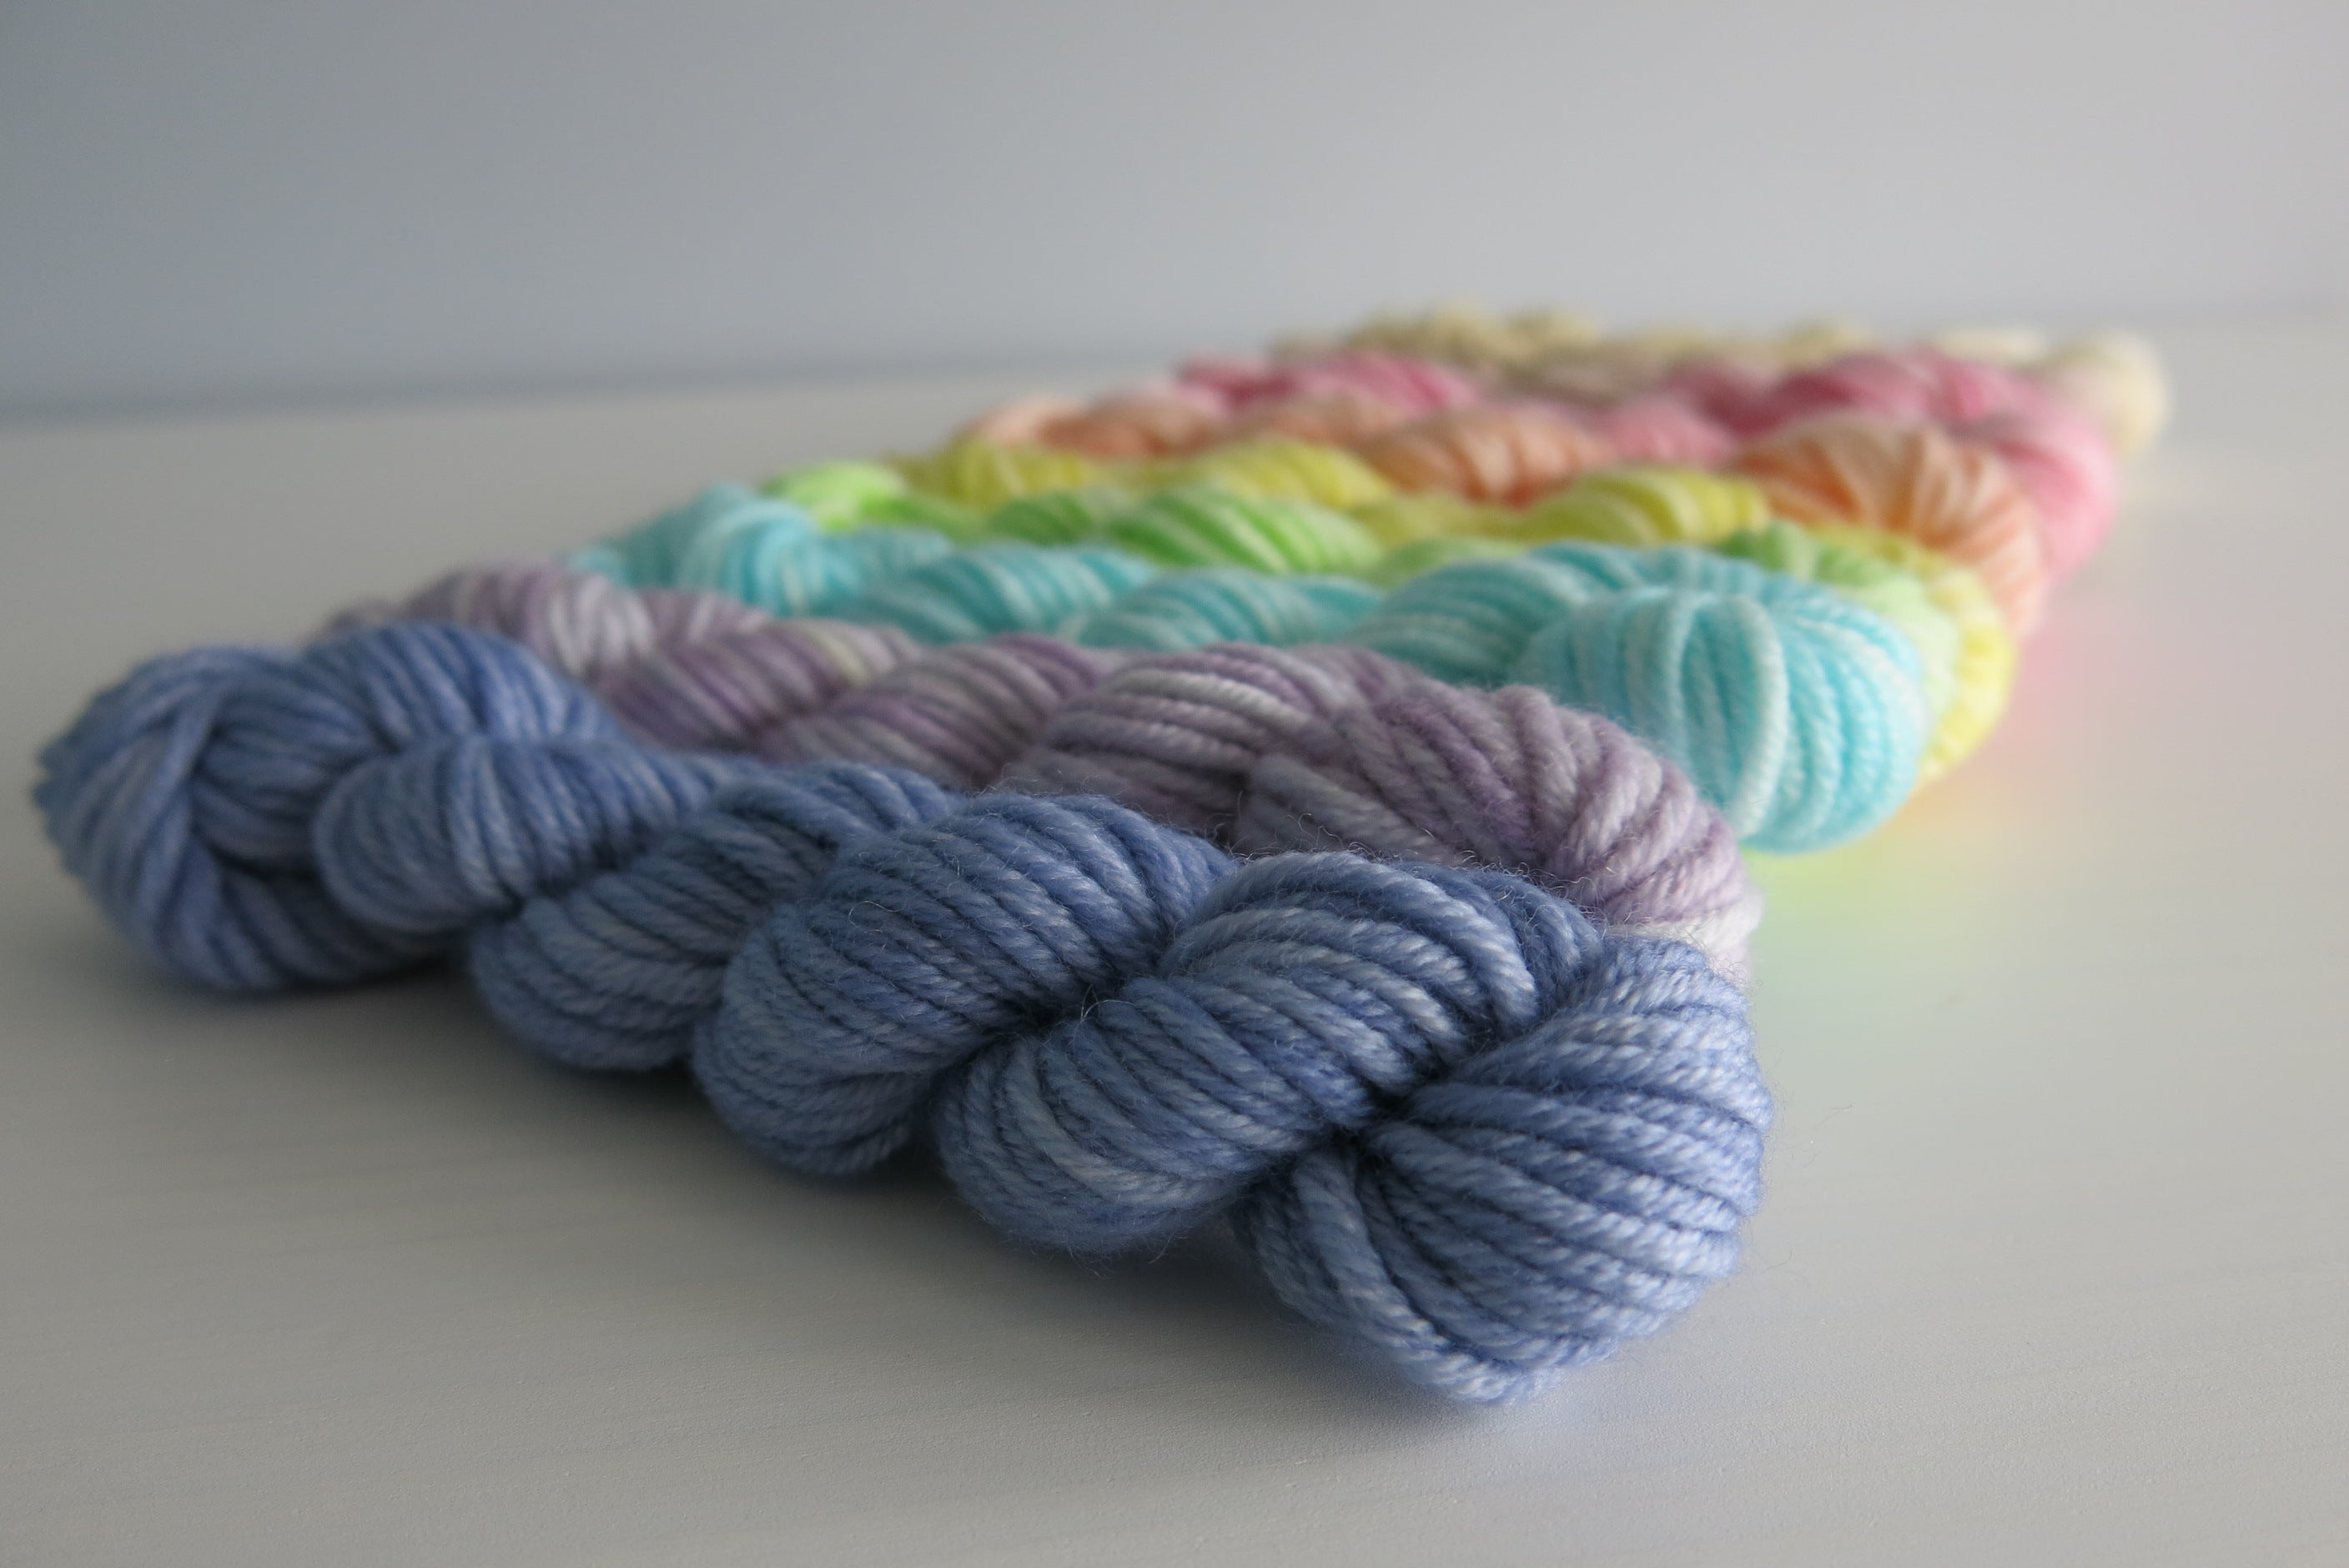 indie dyed merino dk yarn mini skein set in pastels